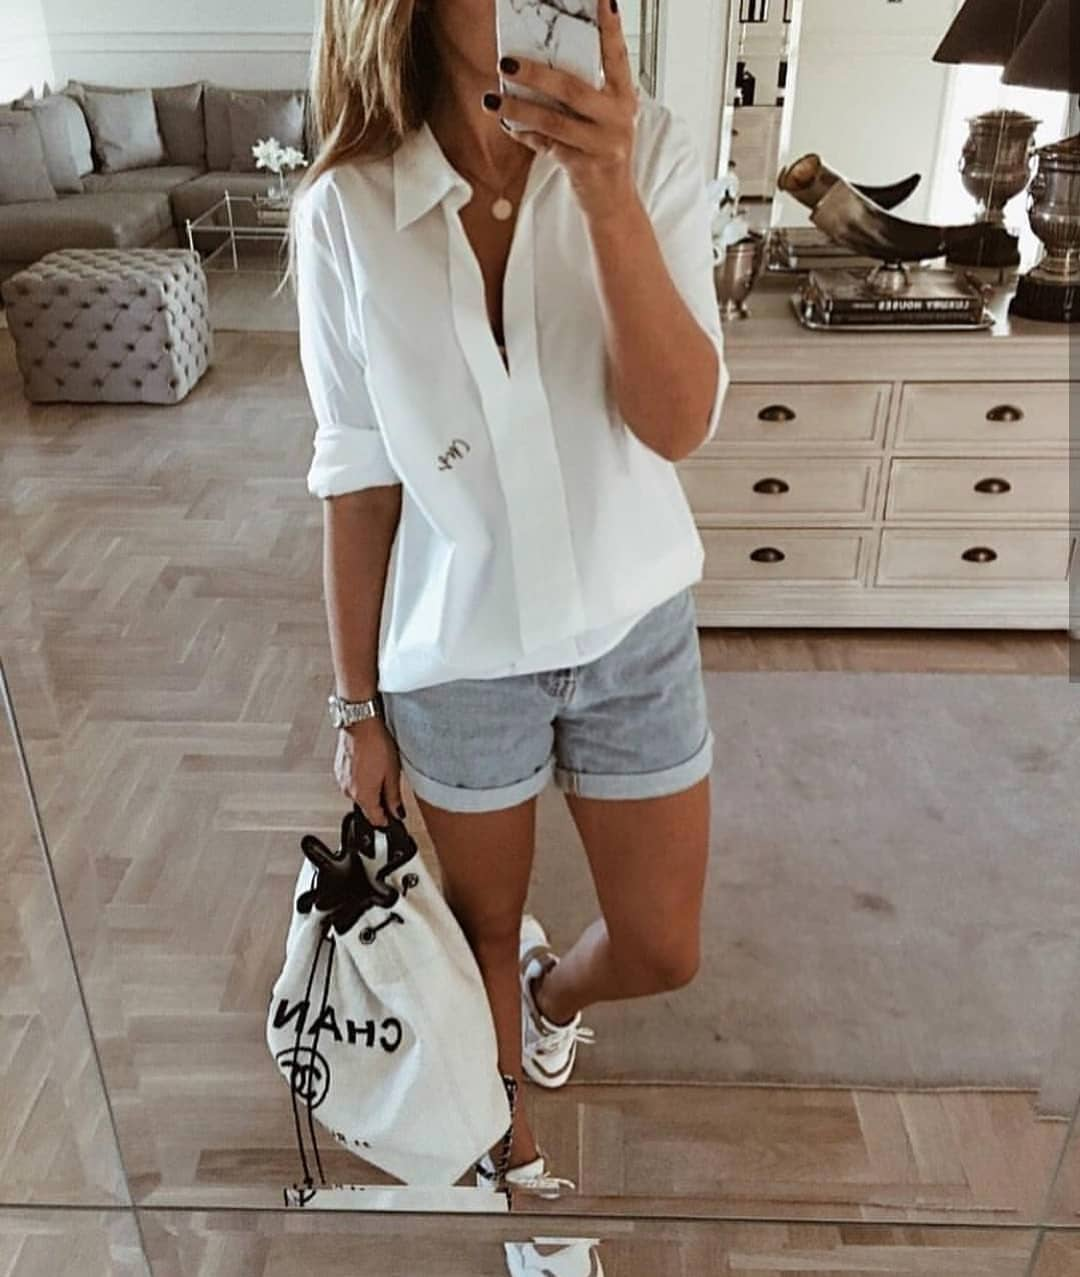 Silk Shirt In White With Denim Shorts And White Sneakers For Summer 2019